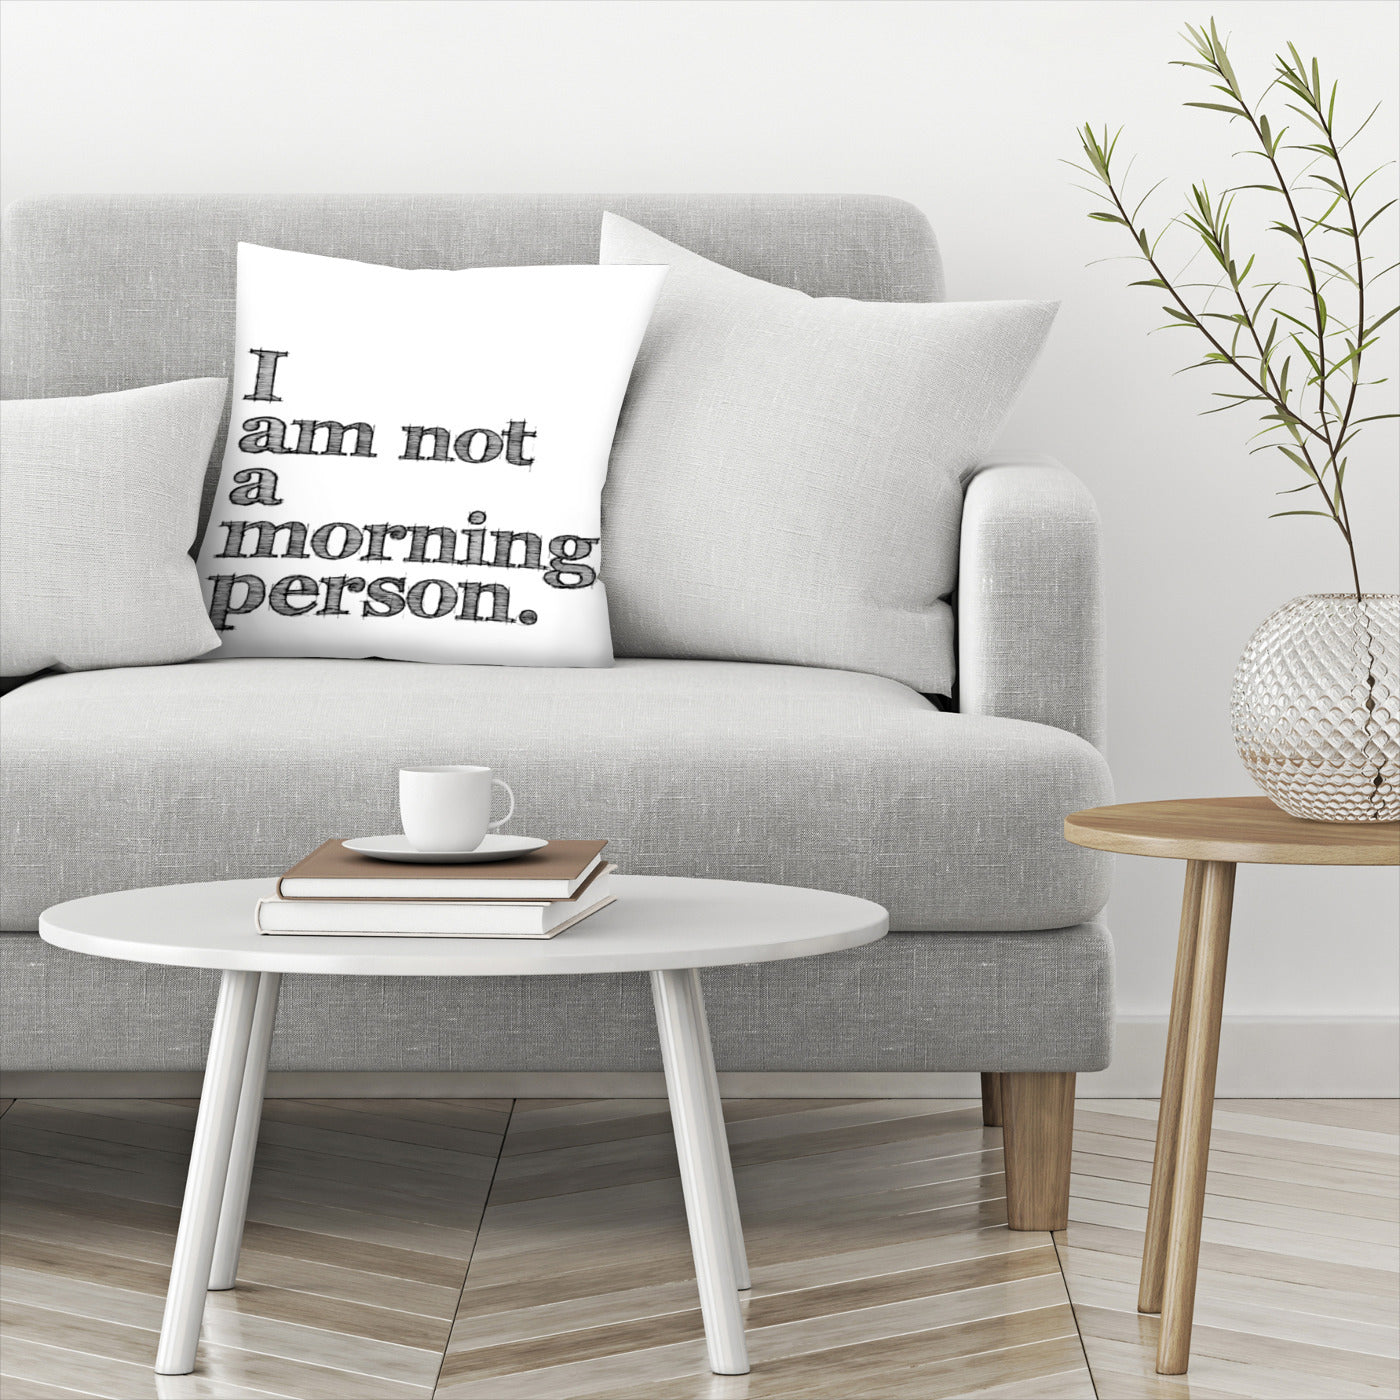 I Am Not Morning Person Black by Amy Brinkman Decorative Pillow - Decorative Pillow - Americanflat